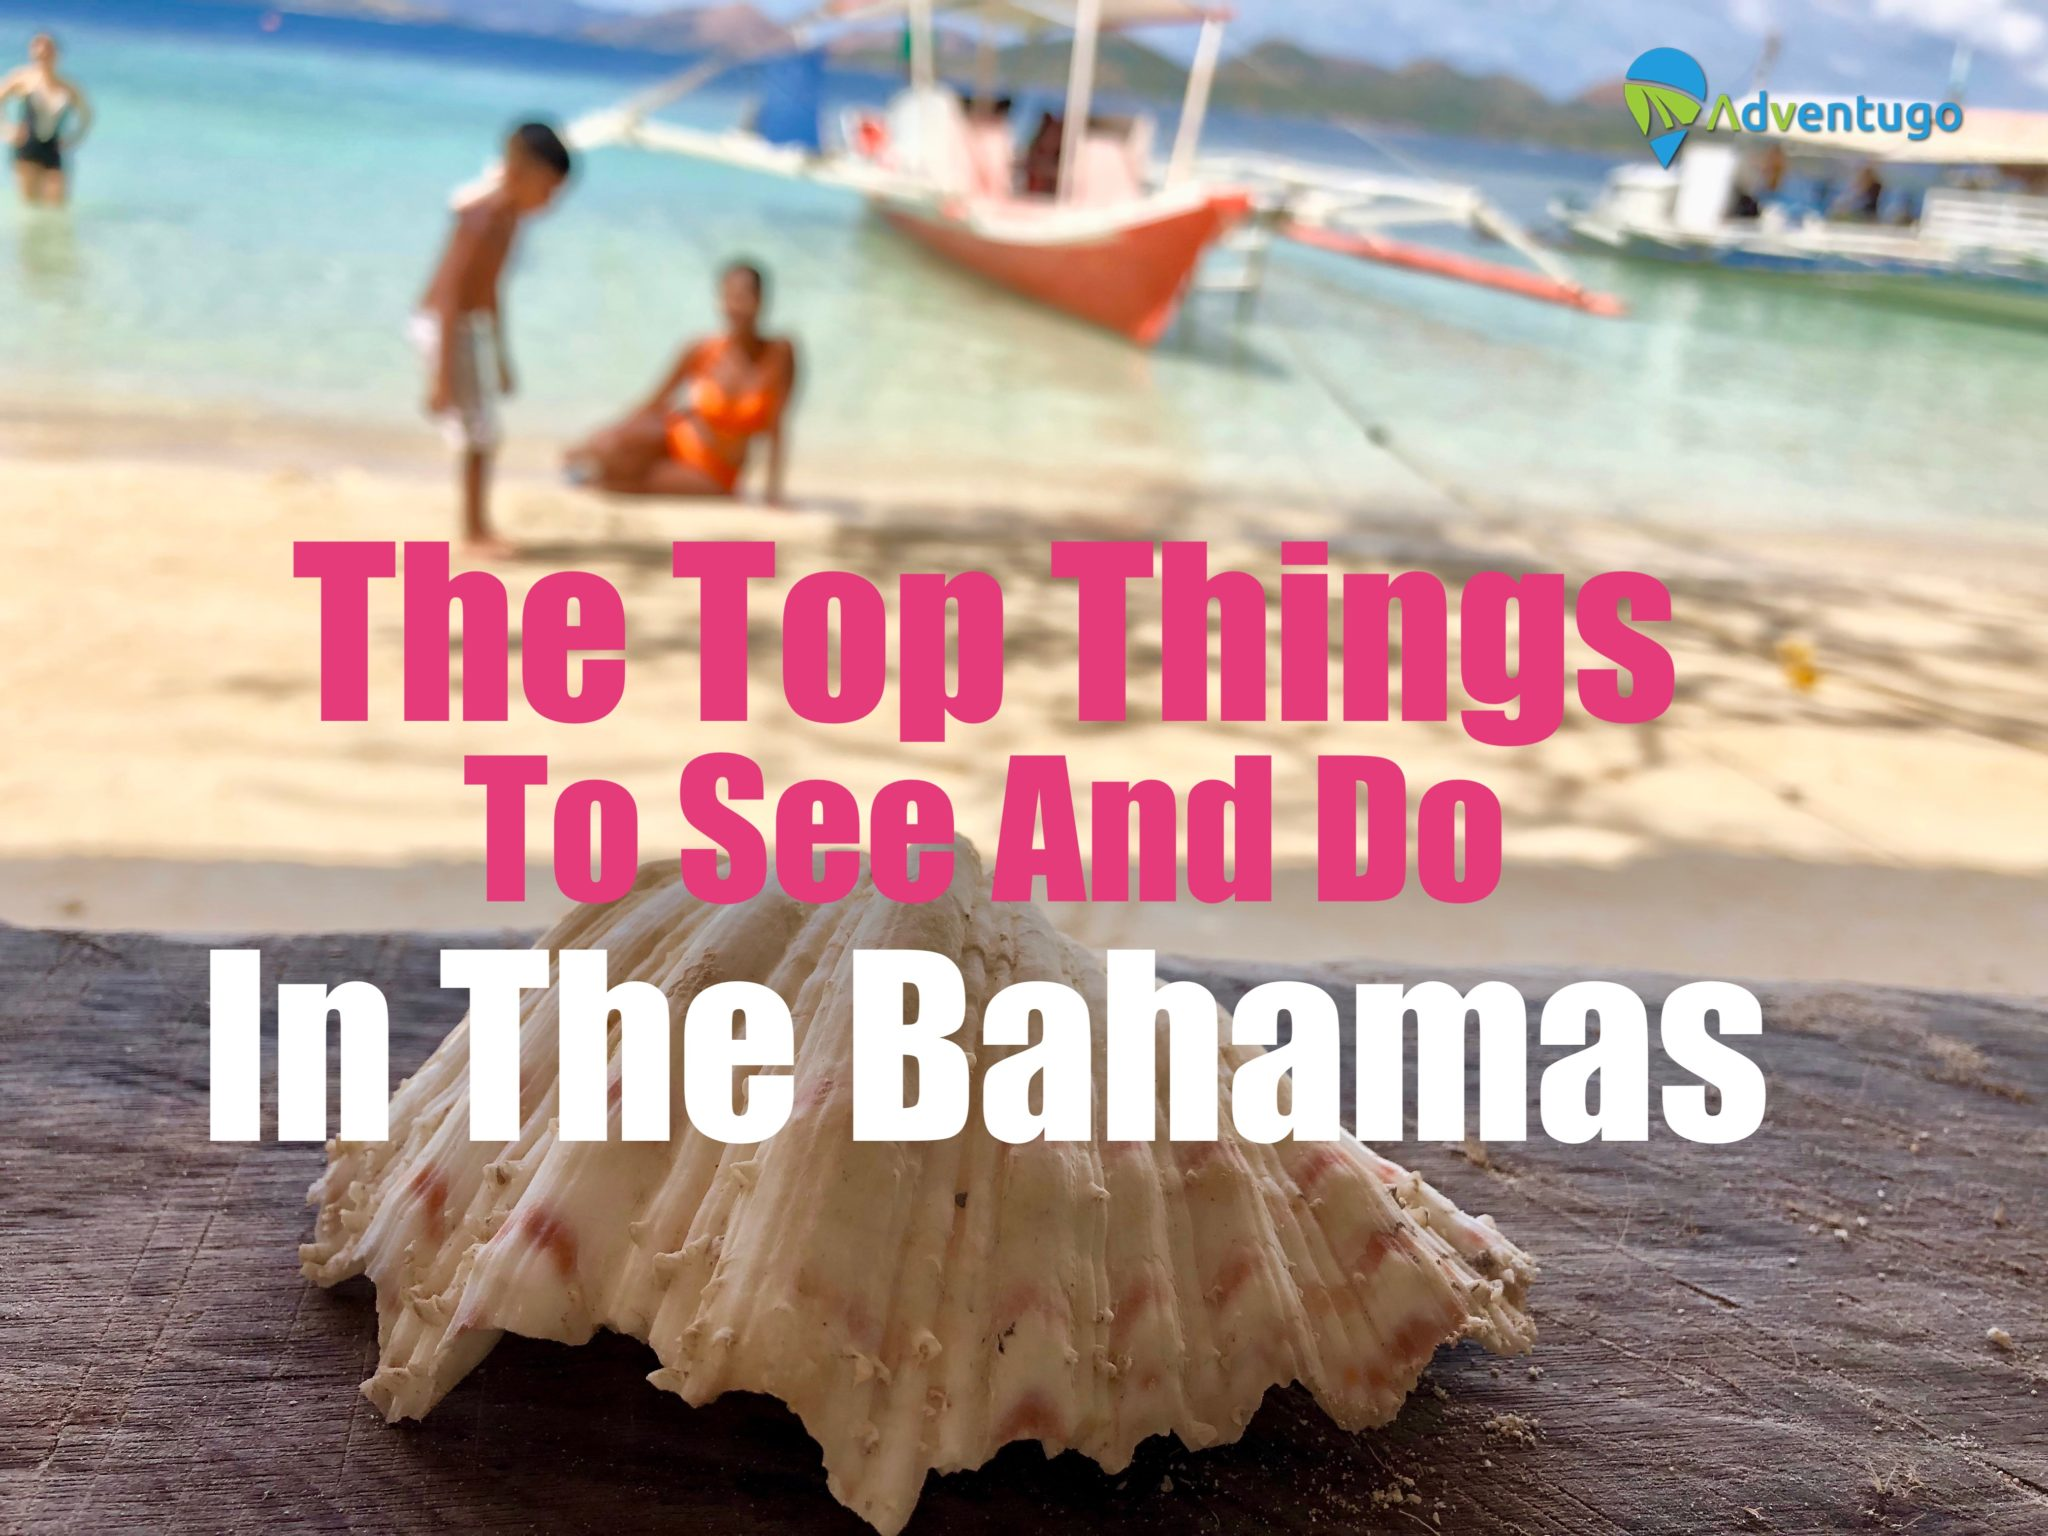 The top things to see and do in the Bahamas